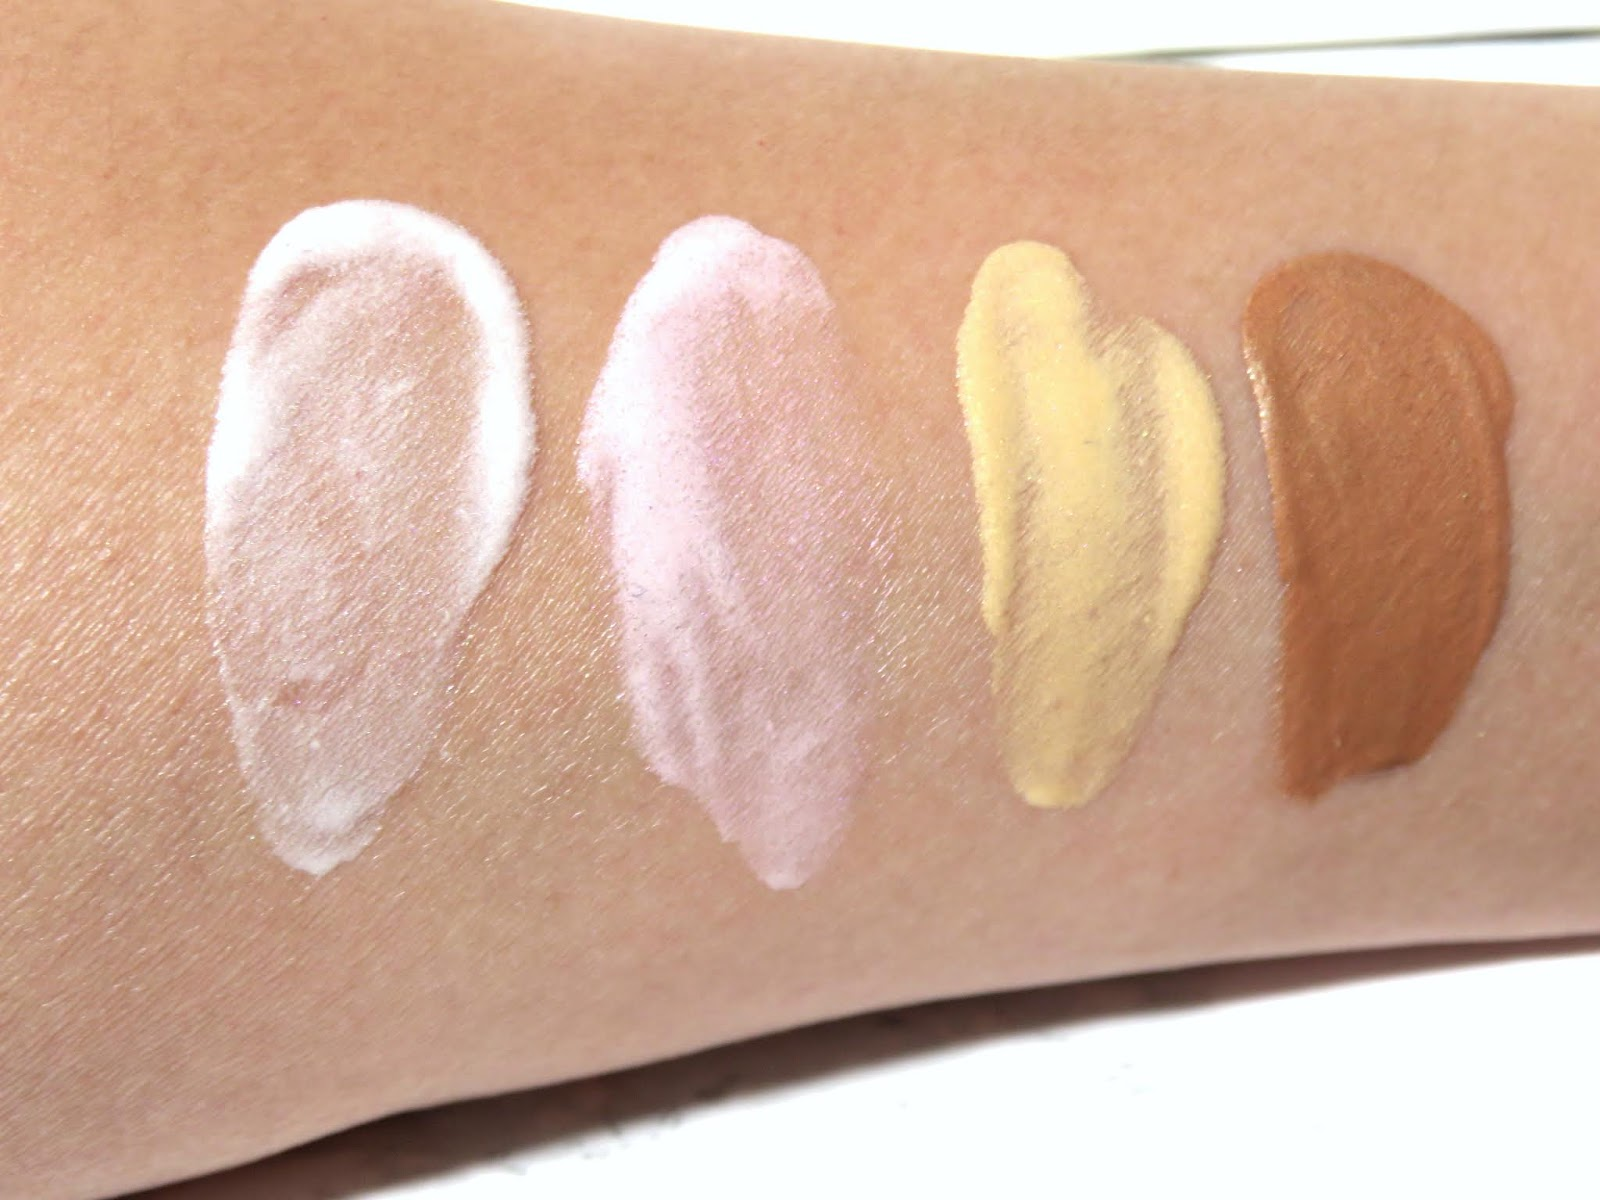 By Terry Cellularose Brightening CC Serum Swatches